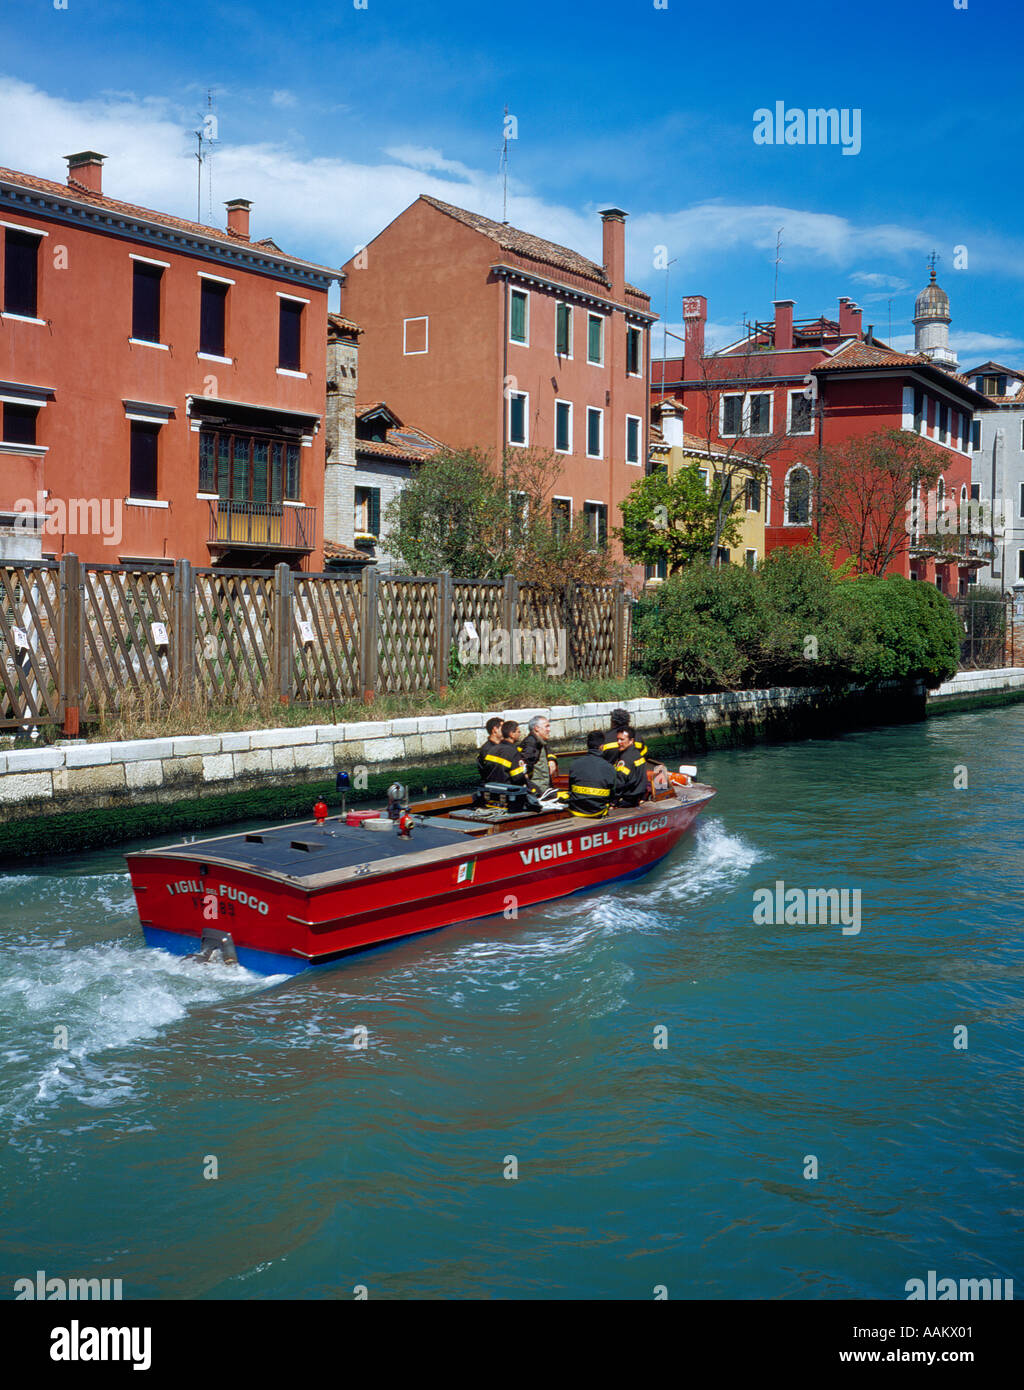 firebrigade boat in Rio Nueovo Venice, UNESCO World Heritage Site,  Italy, Europe. Photo by Willy Matheisl - Stock Image